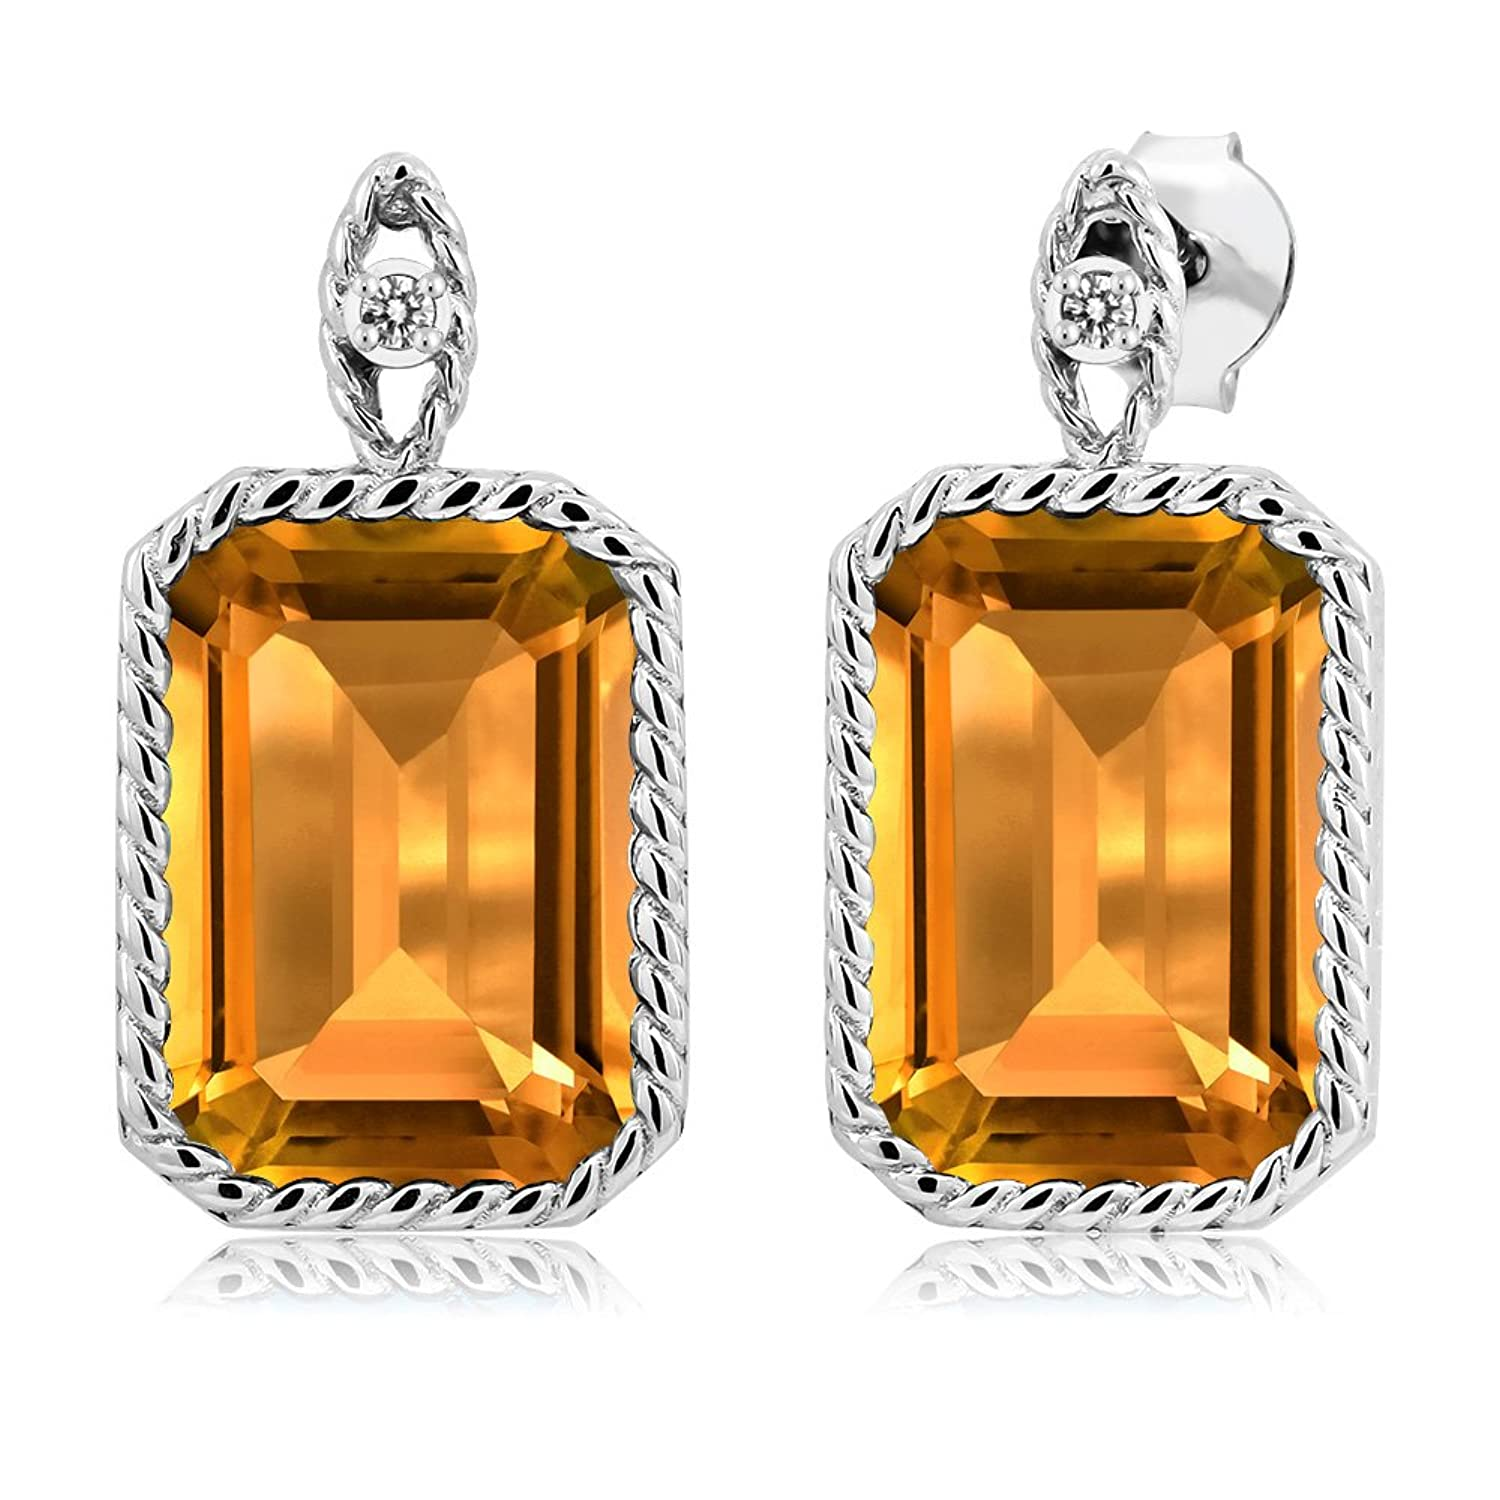 16.43 Ct Octagon Yellow Citrine White Diamond 925 Sterling Silver Earrings